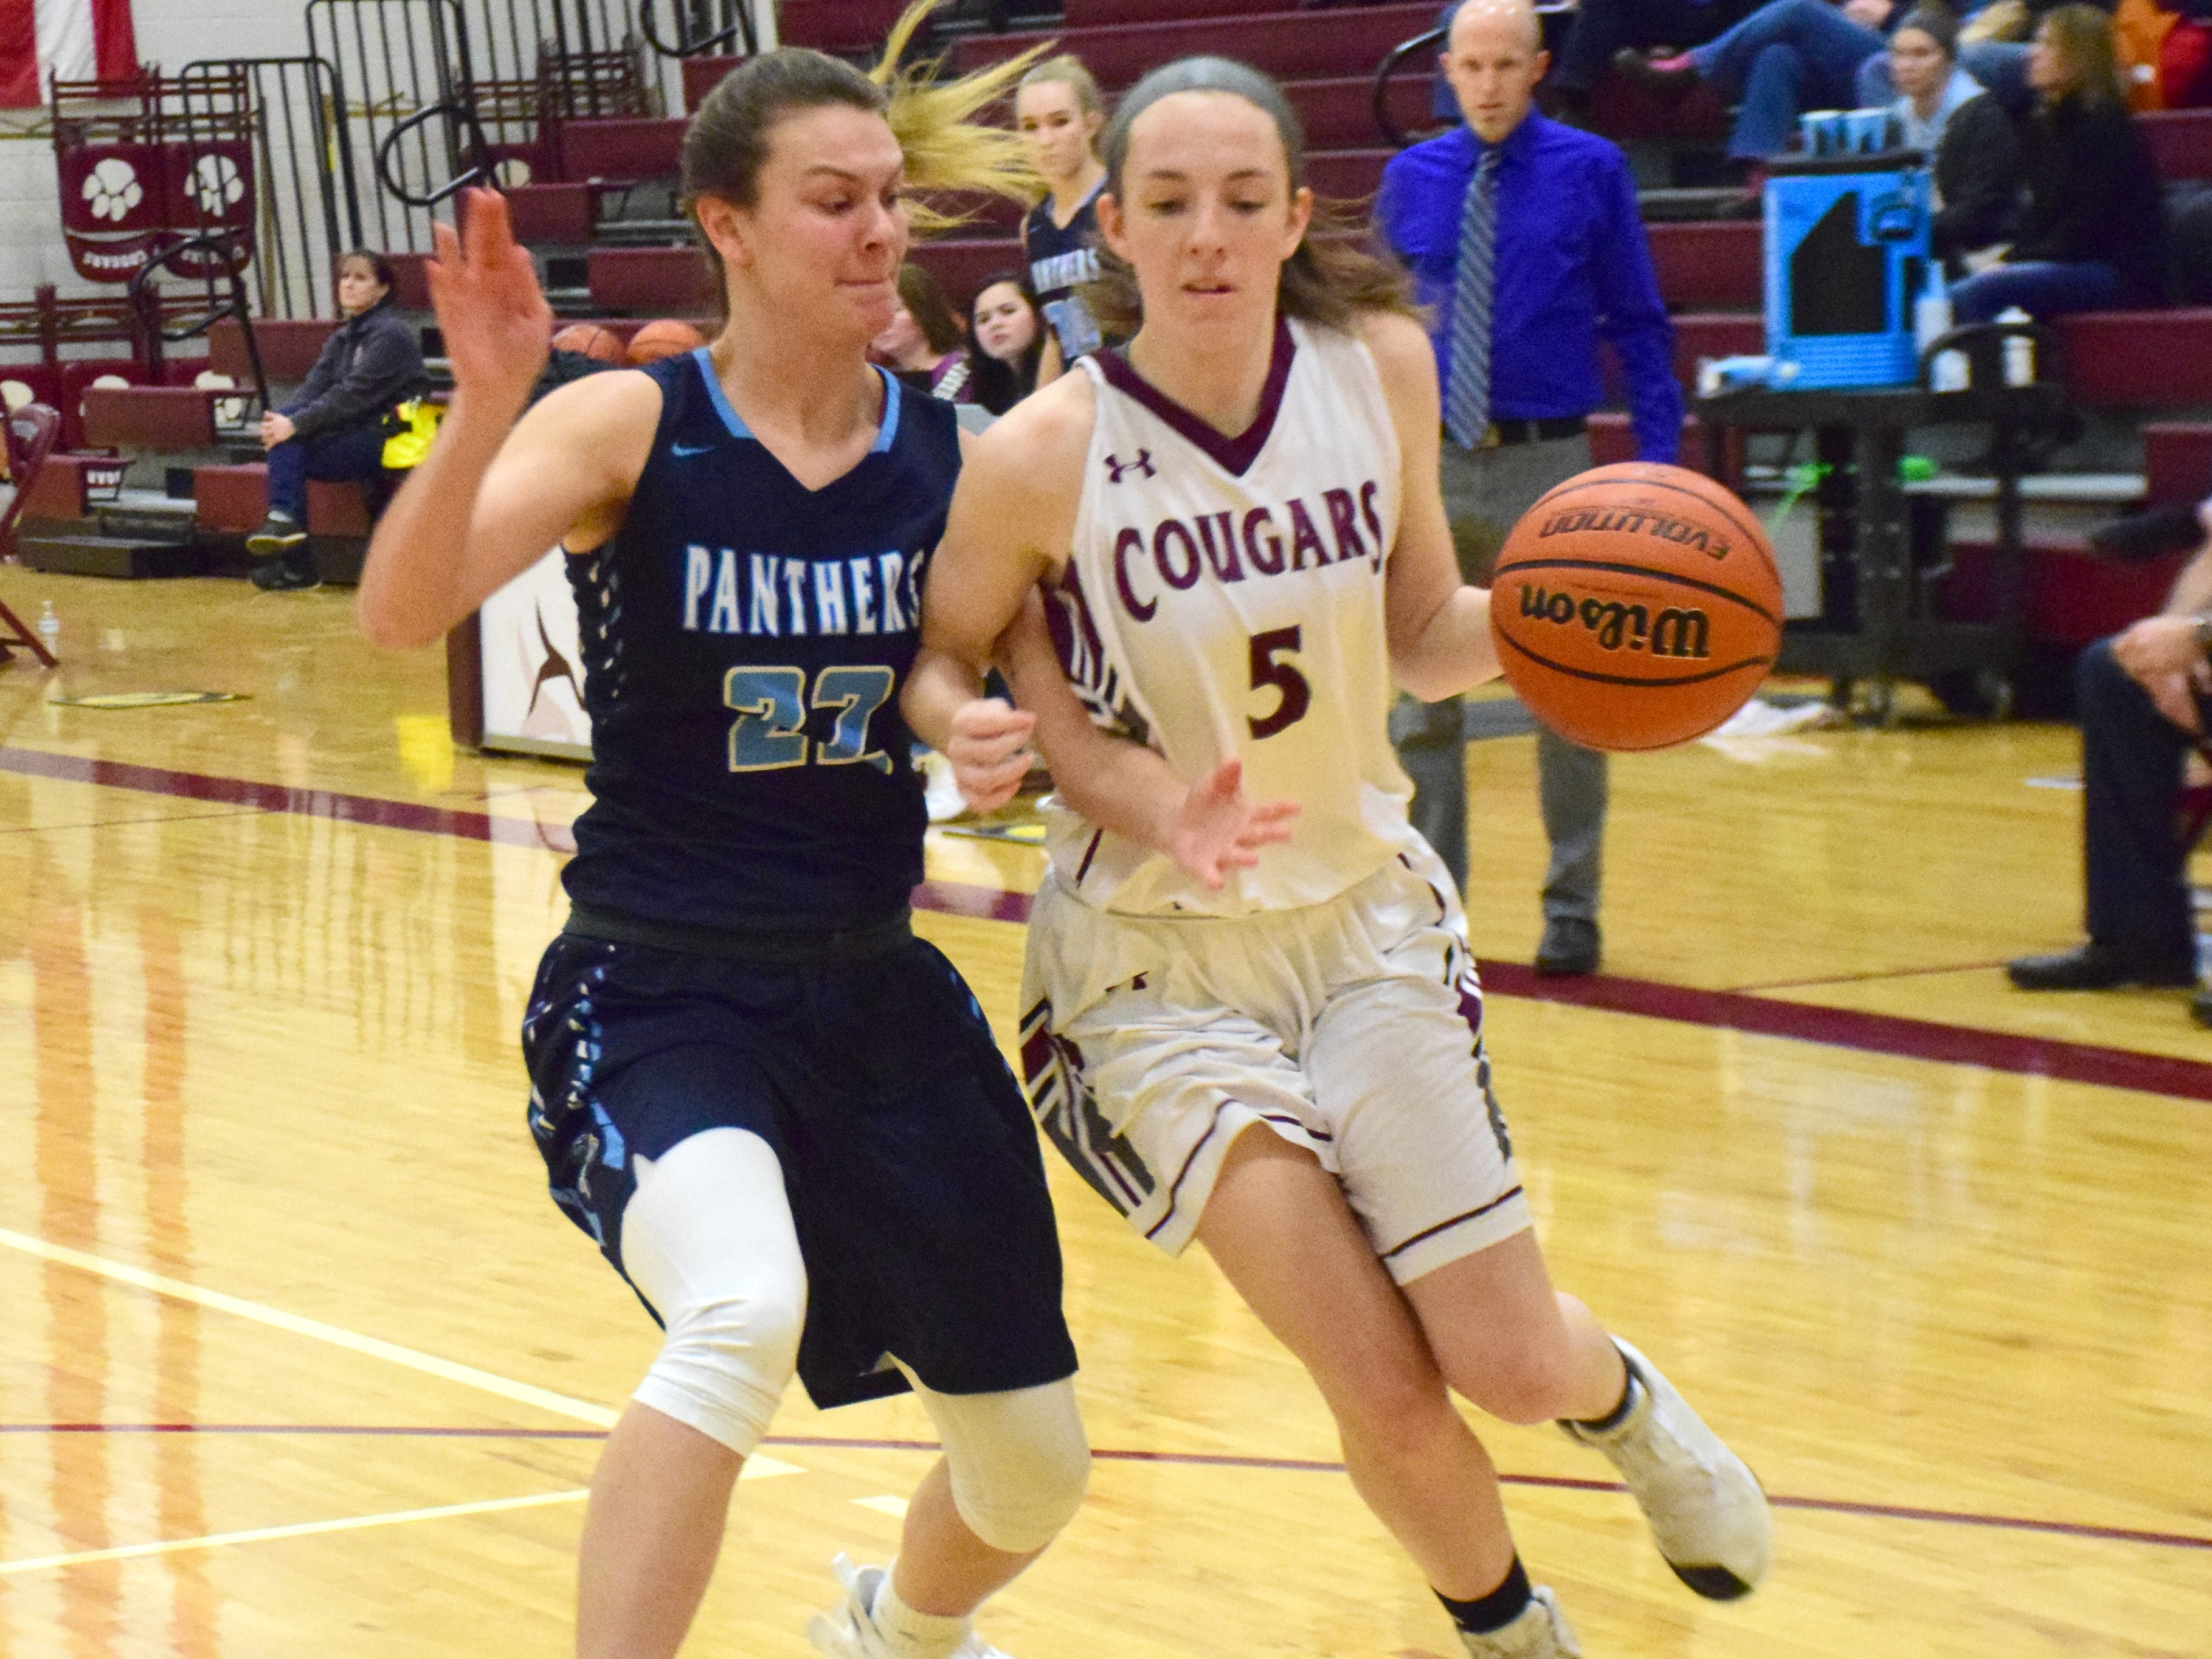 Stuarts Draft's Lyndsay Harris is pressured by Page County's Lyndsey Knowles during the first half of their Shenandoah District girls basketball game on Thursday, Jan. 10, 2019, at Stuarts Draft High School in Stuarts Draft, Va.